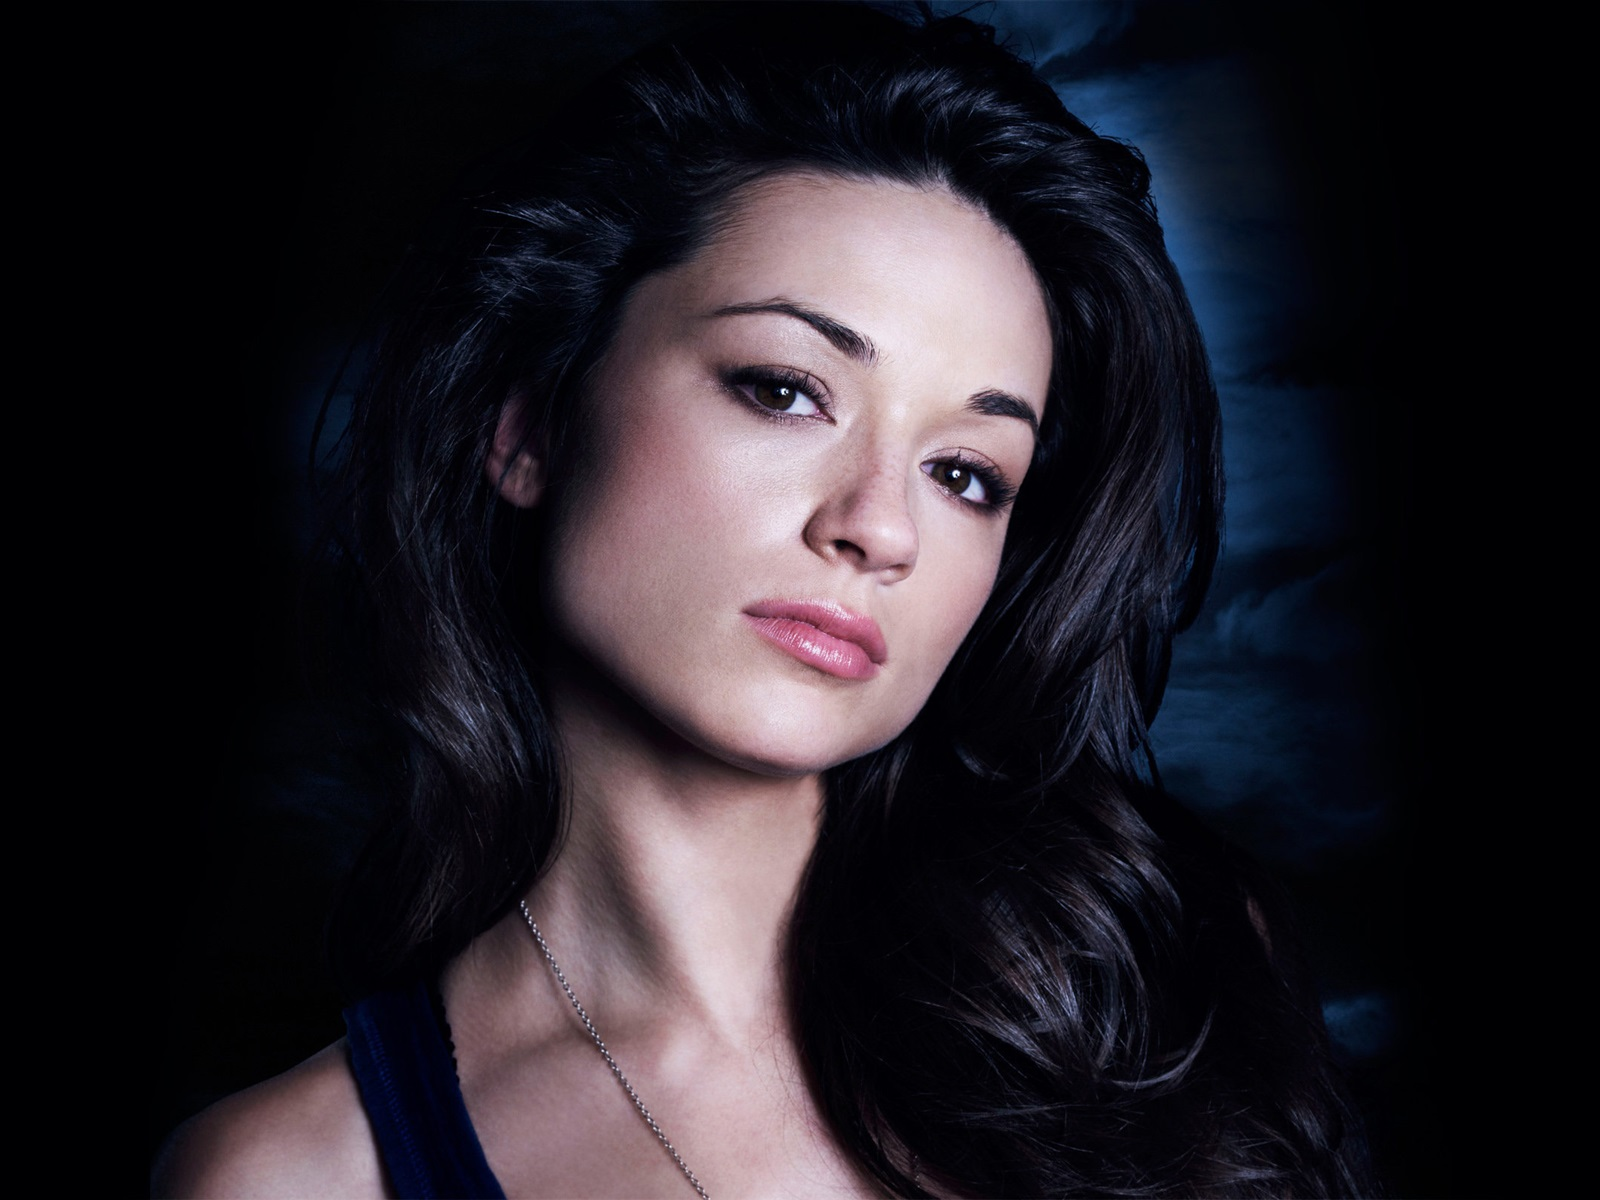 Wallpaper Crystal Reed 01 2560x1600 HD Picture, Image